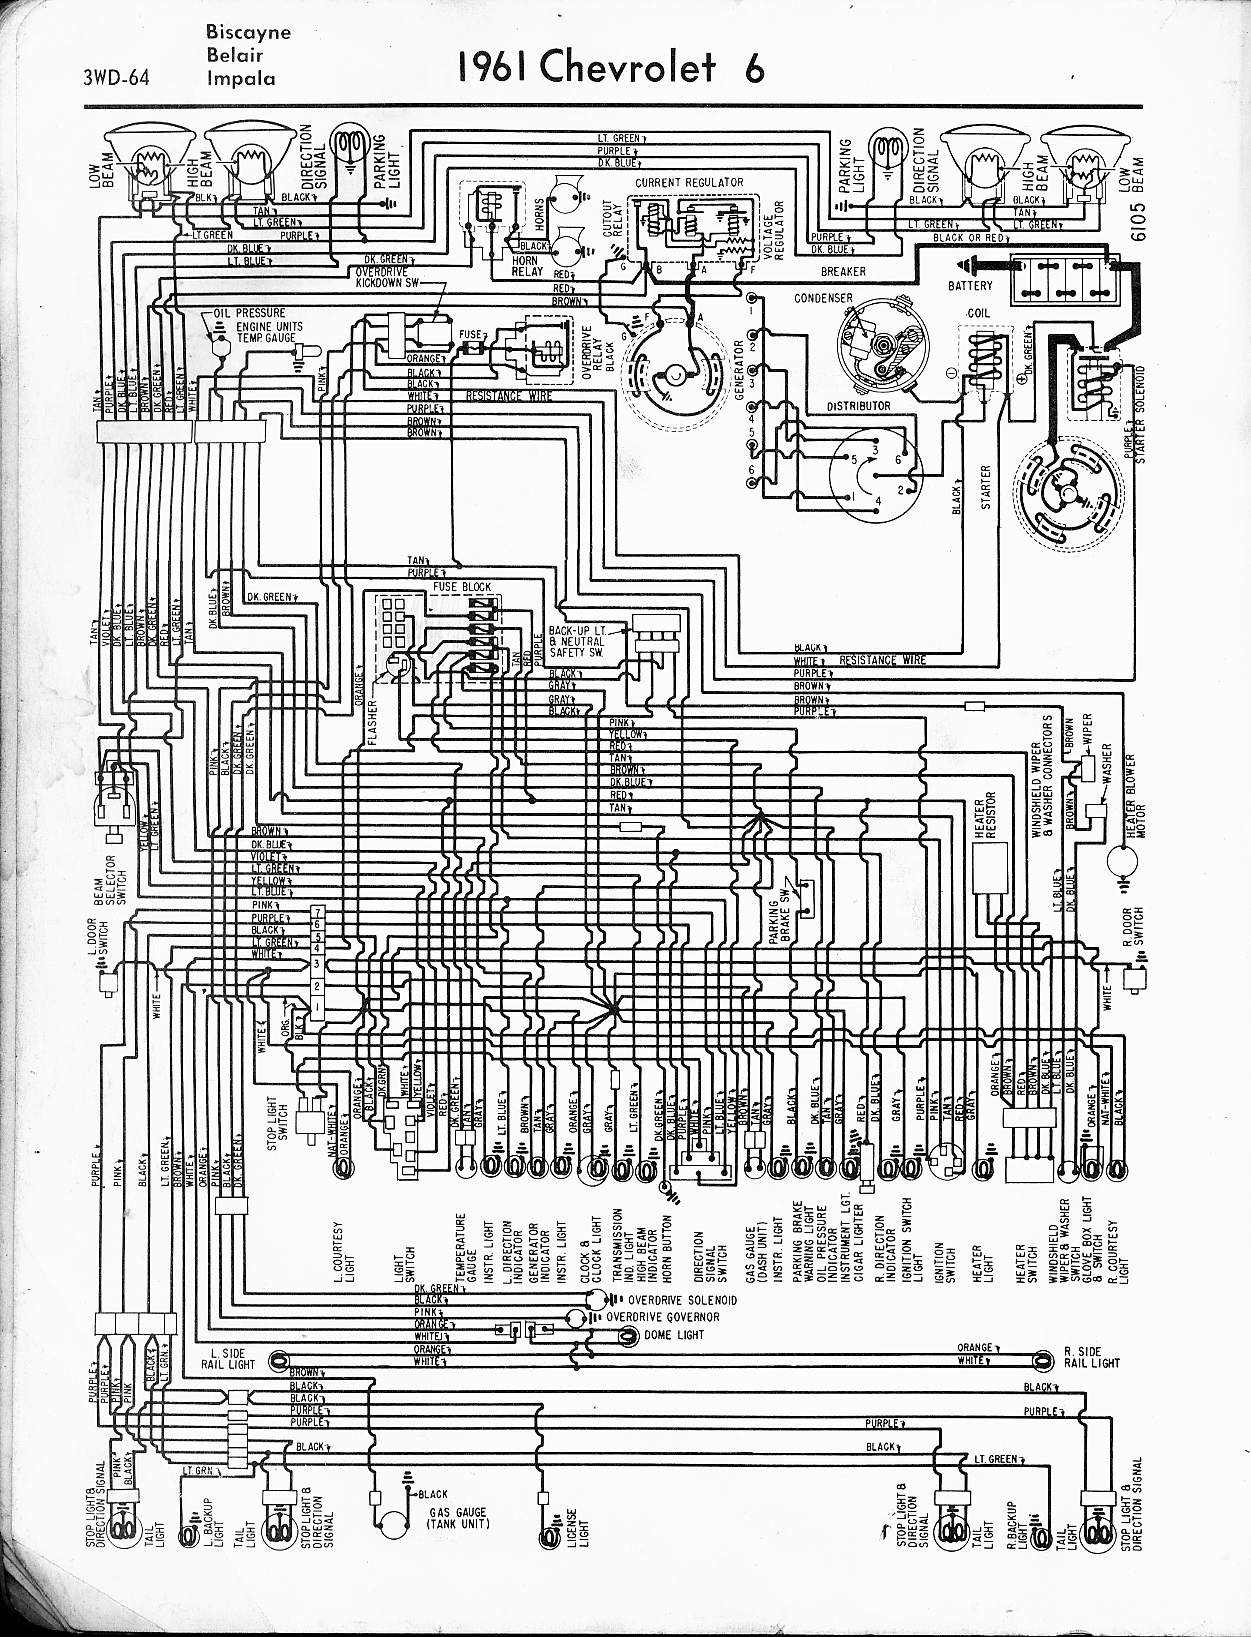 MWireChev61_3WD 064 2001 corvette wiring diagram 2001 buick wiring diagram \u2022 wiring Basic Turn Signal Wiring Diagram at edmiracle.co